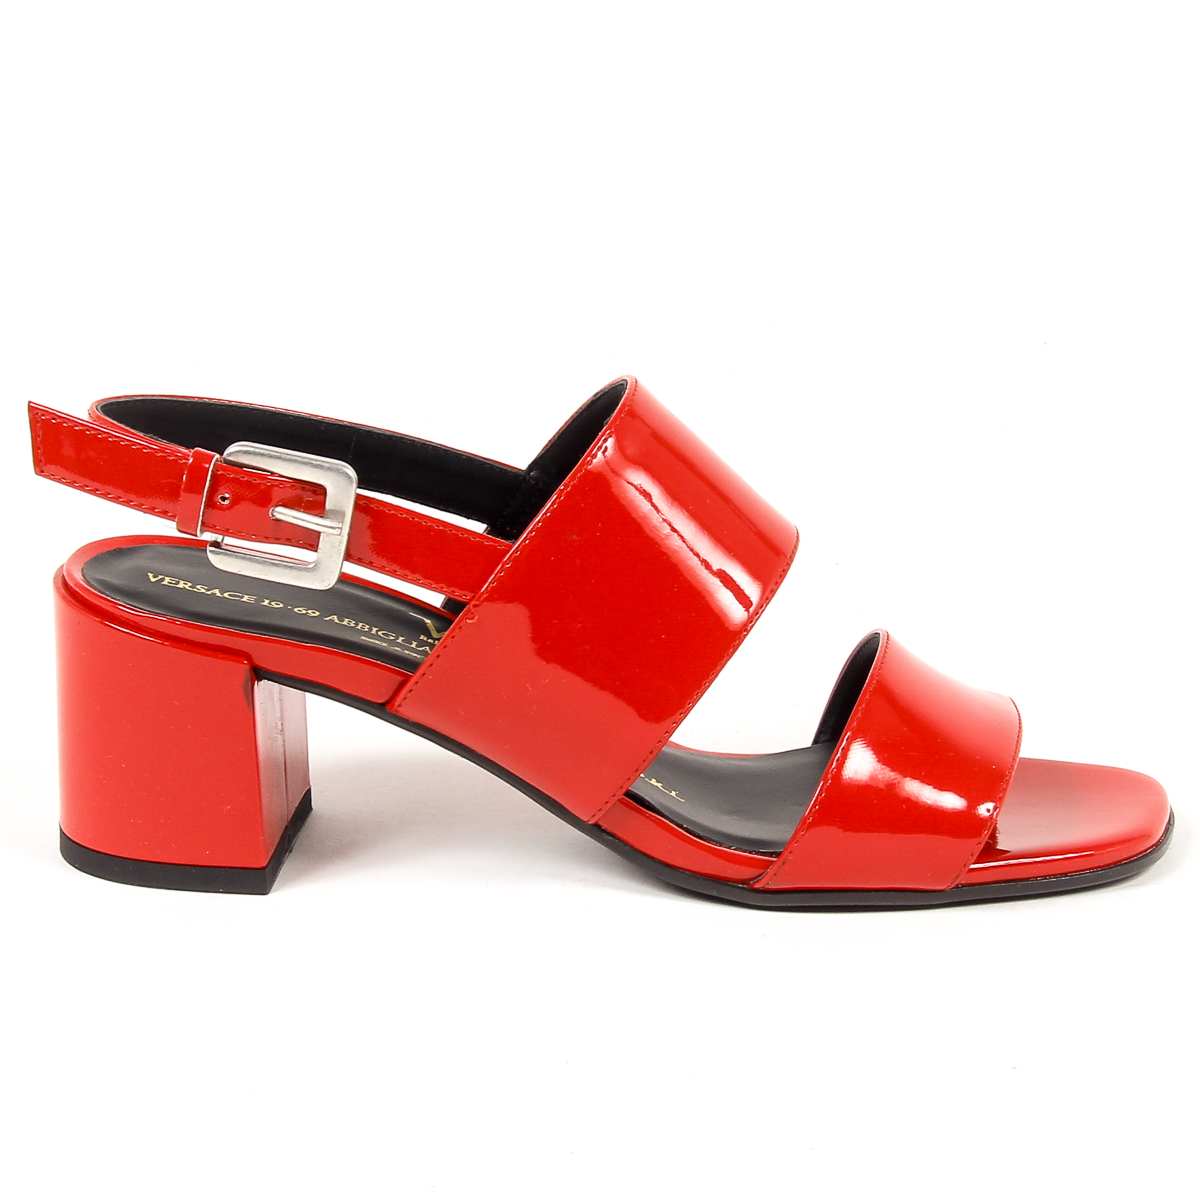 Primary image for V 1969 Italia Womens Sandal Red SALMA